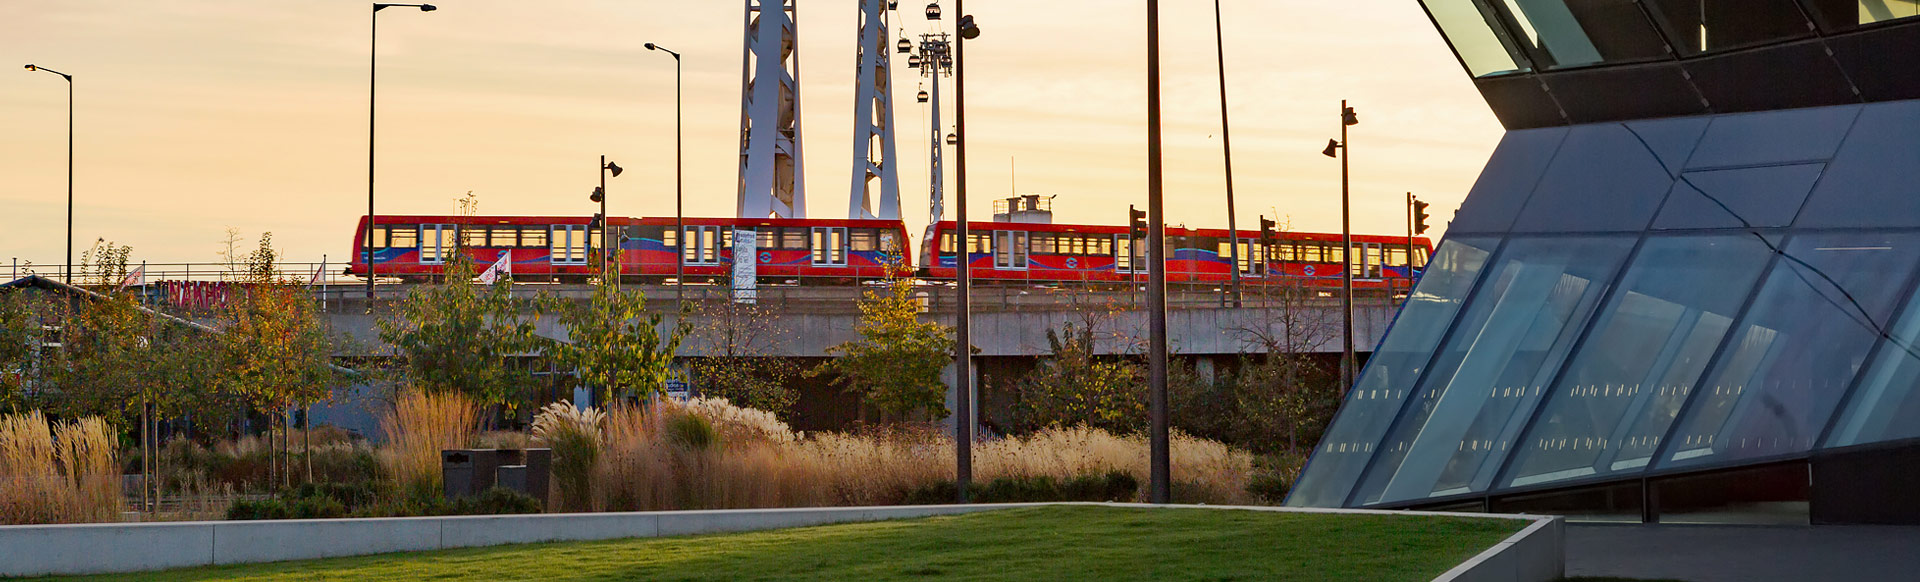 The Docklands Light Railway and Emirates Air Line cable car. © visitlondon.com/Jon reid